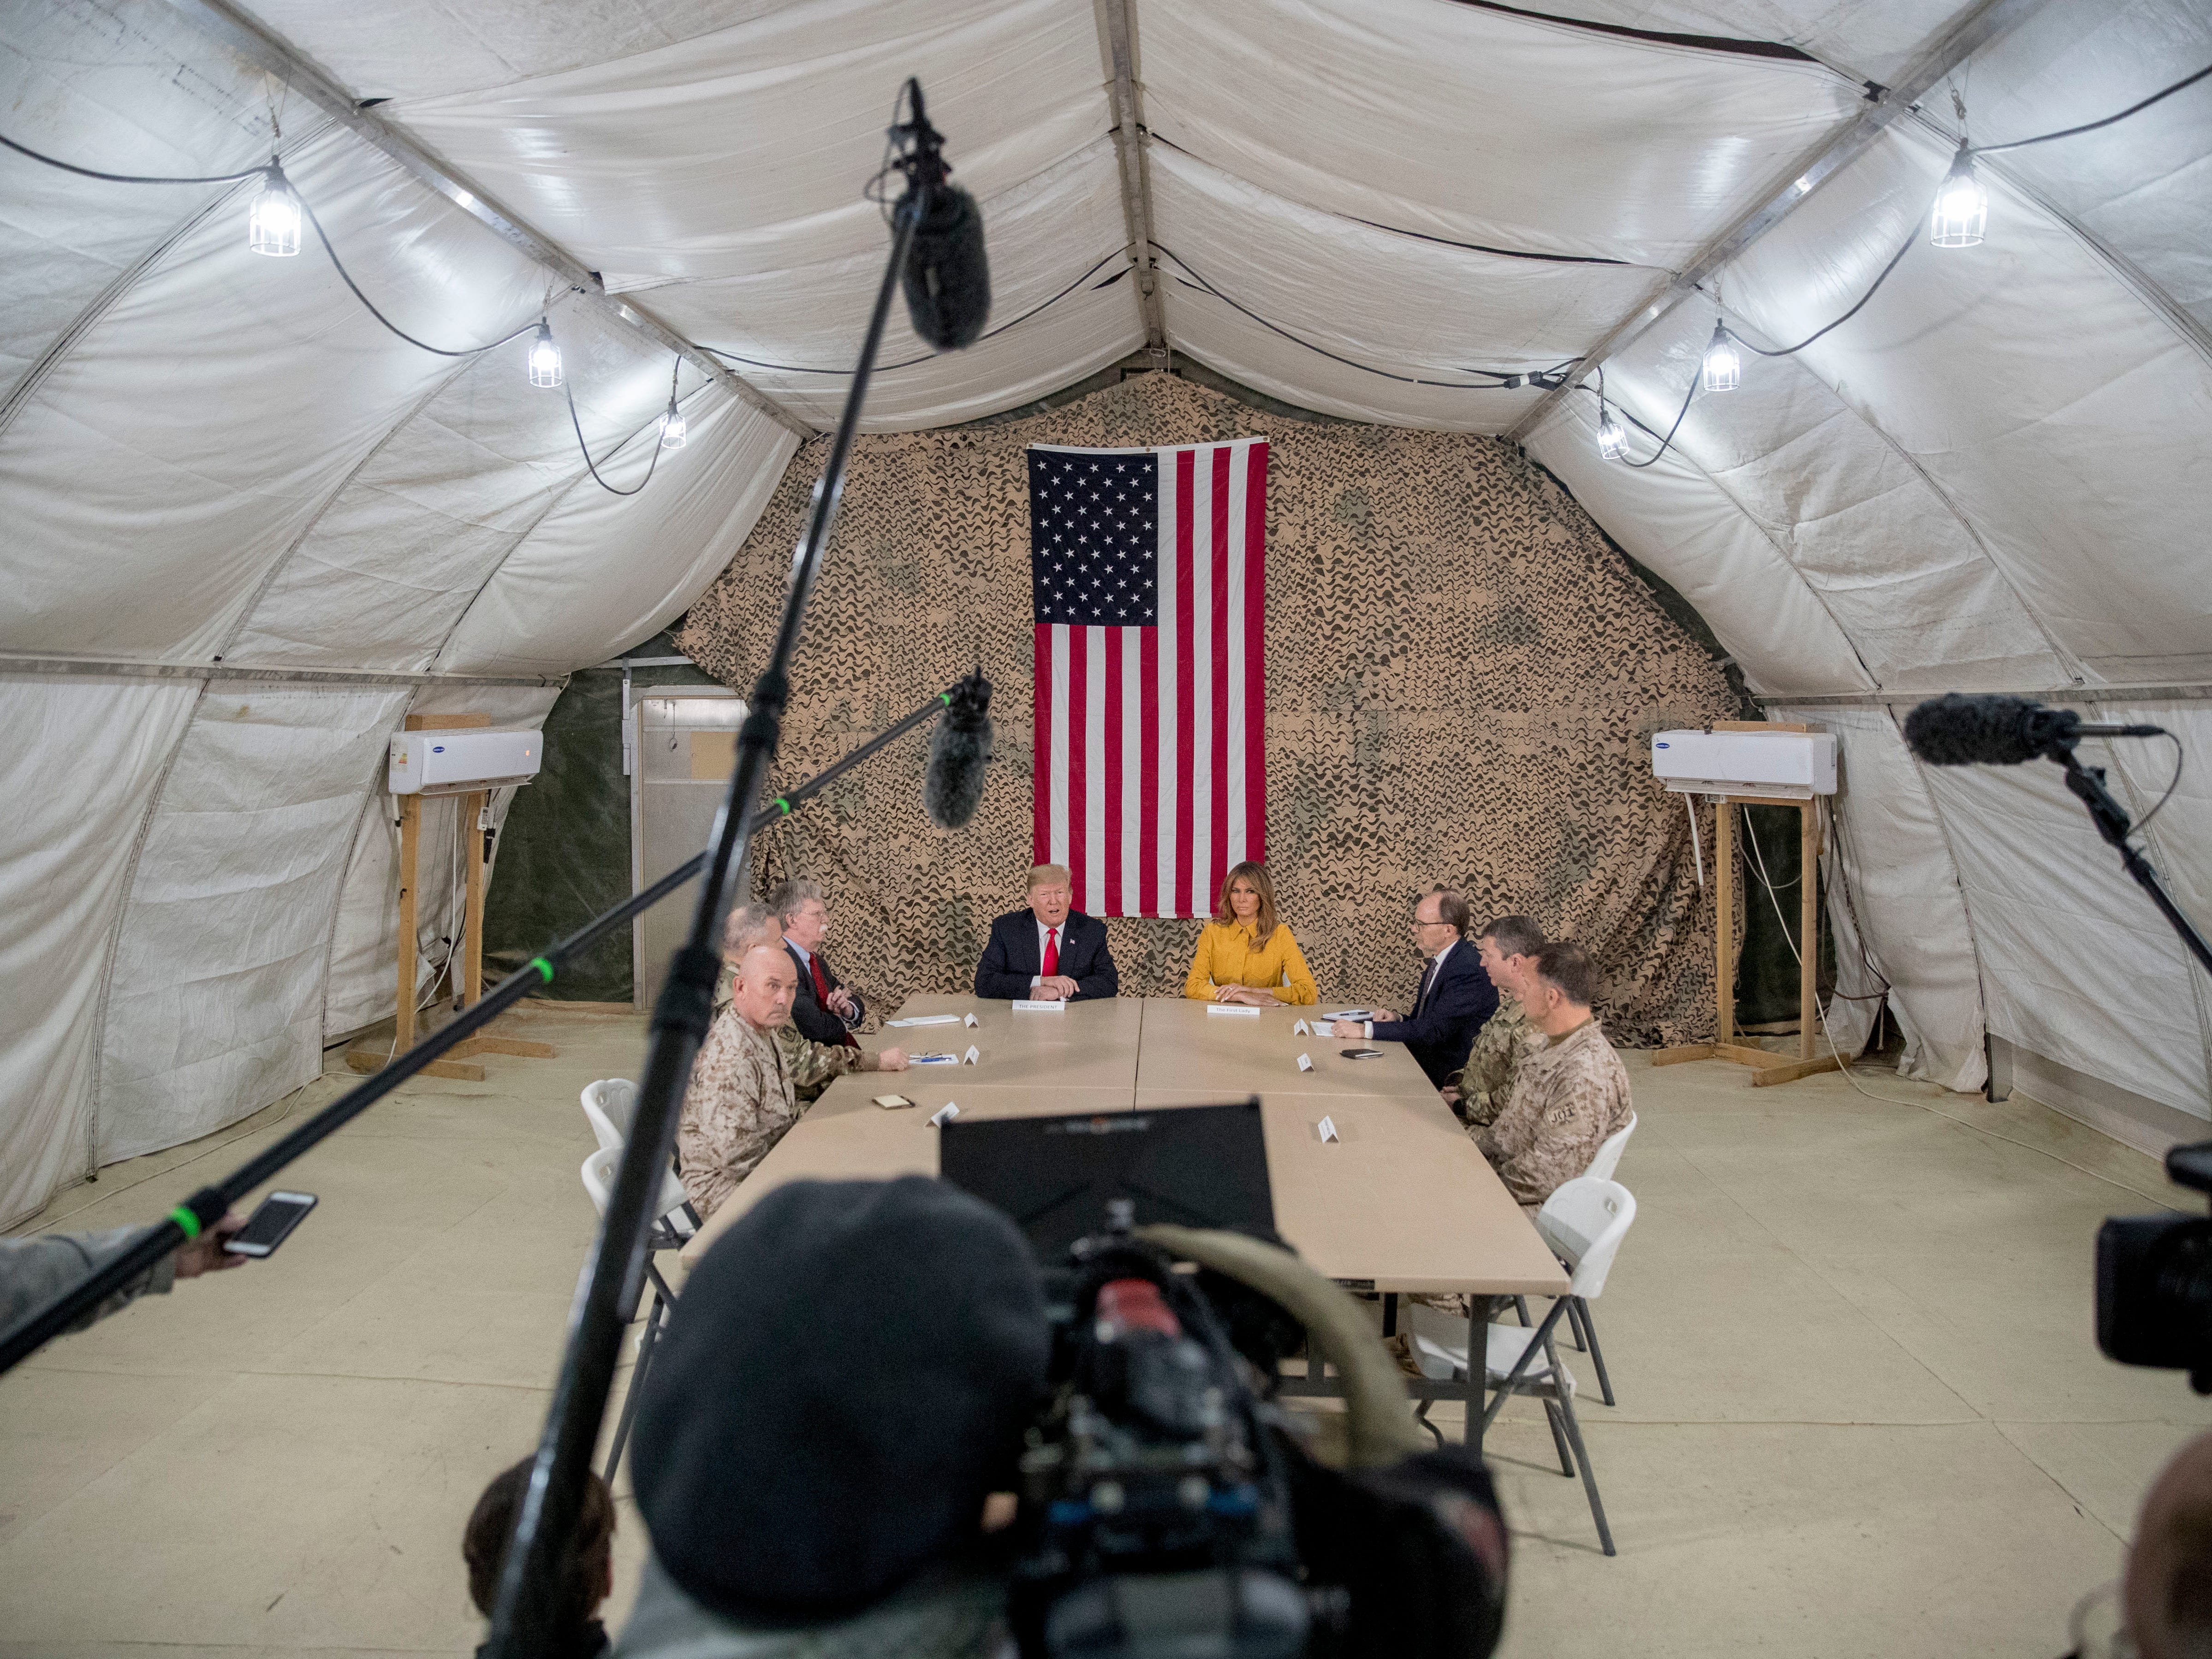 President Donald Trump, accompanied by National Security Adviser John Bolton, third from left, first lady Melania Trump, fourth from right, US Ambassador to Iraq Doug Silliman, third from right, and senior military leadership, speaks to members of the media at Al Asad Air Base, Iraq, Wednesday, Dec. 26, 2018. (AP Photo/Andrew Harnik) ORG XMIT: IRQA103